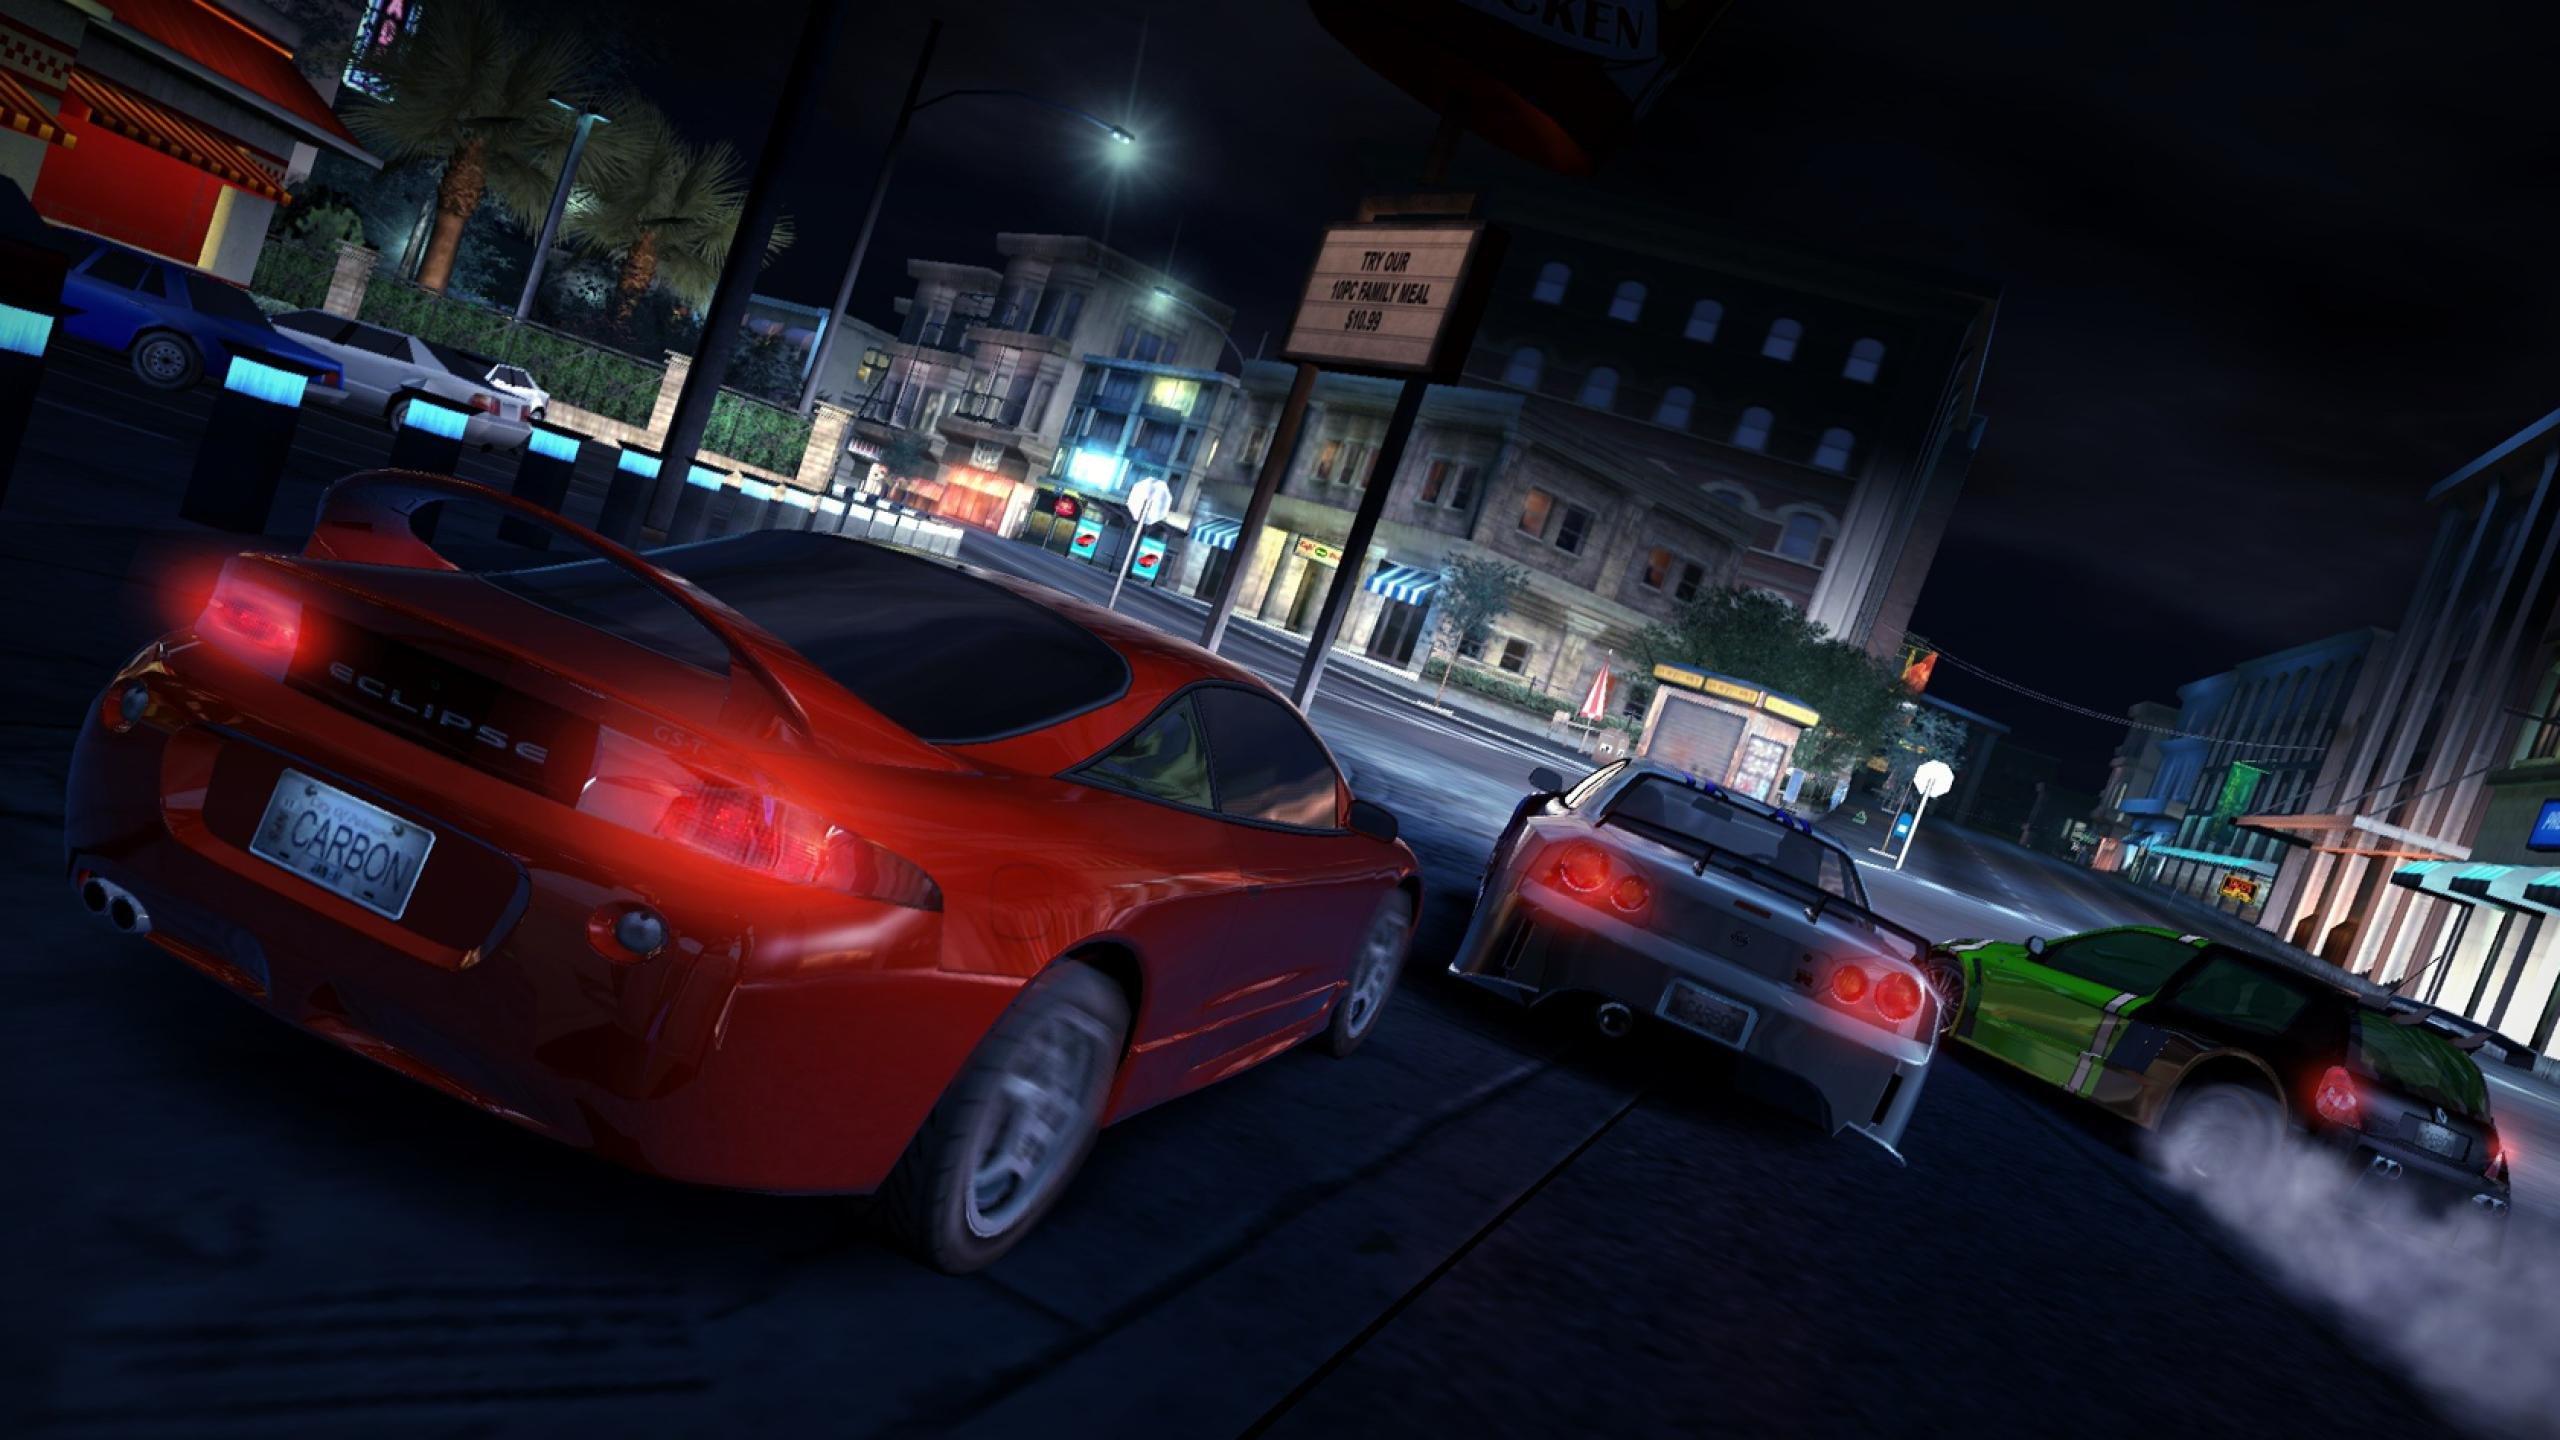 Need For Speed Carbon game HD wallpaper